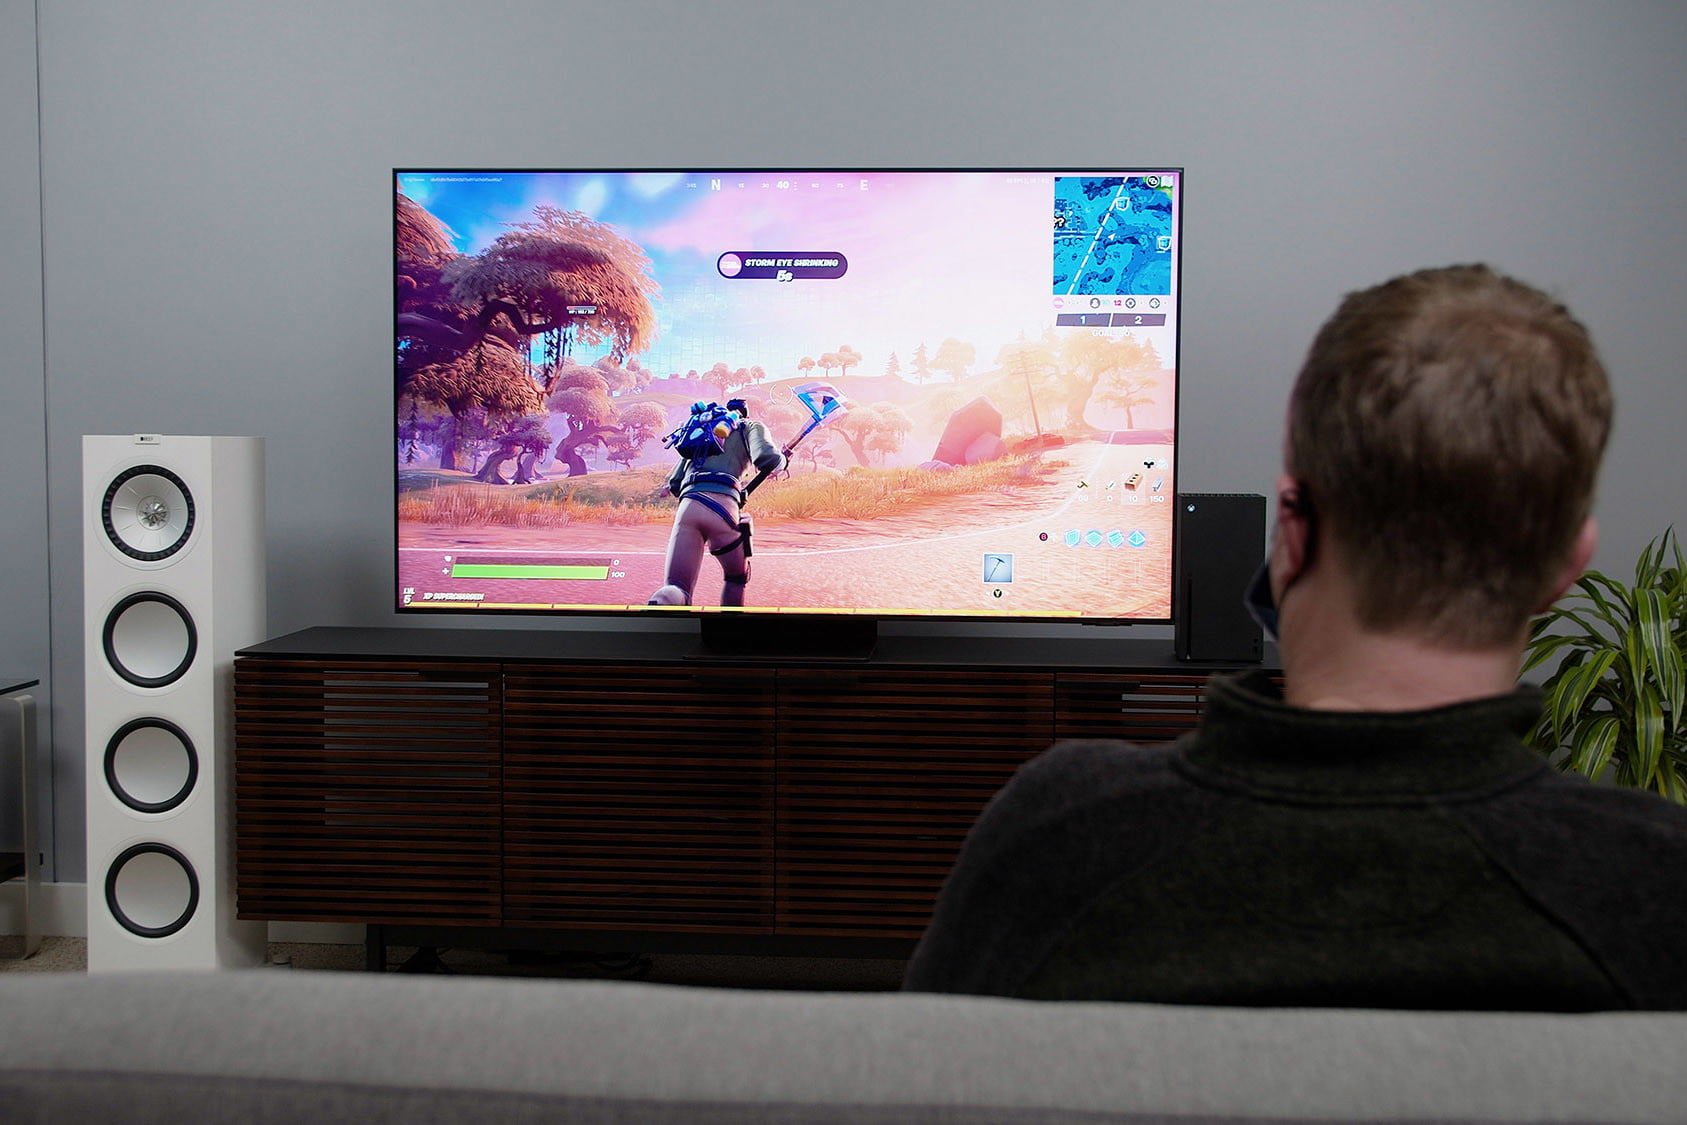 fortnite on the Samsung QN90A TV